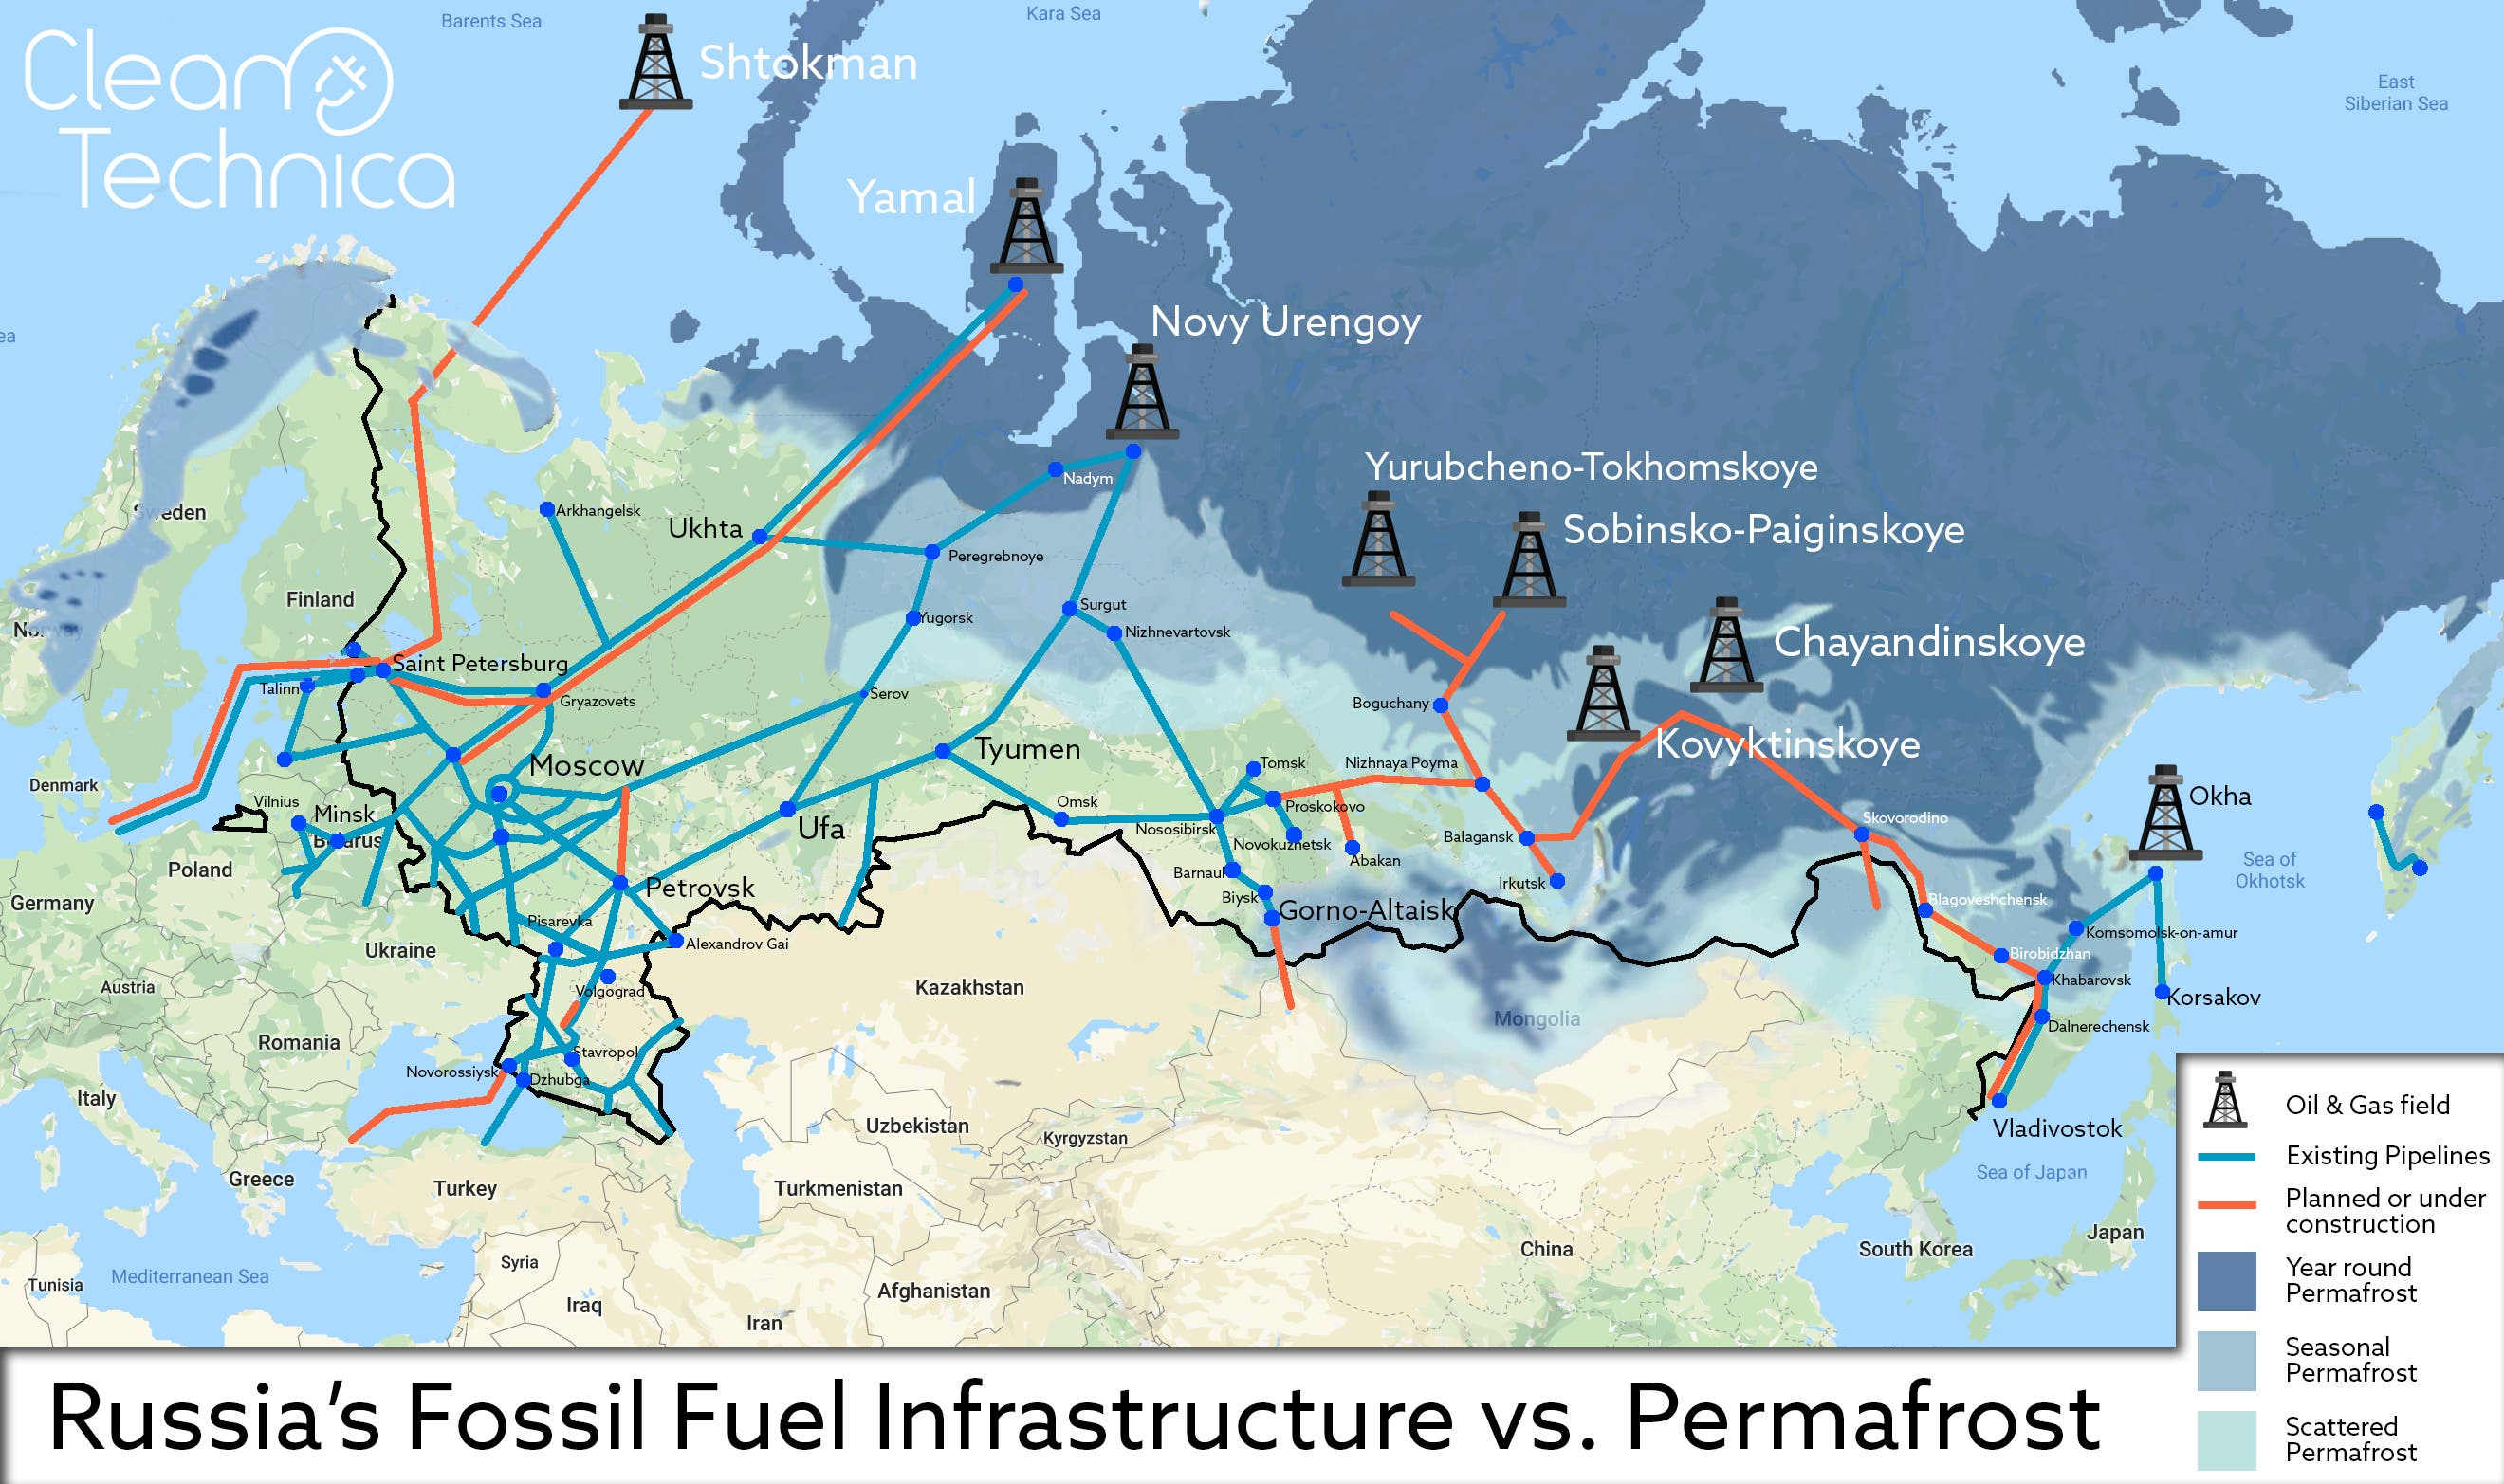 Map: Russsia's fossil fuel infrastructure vs permafrost